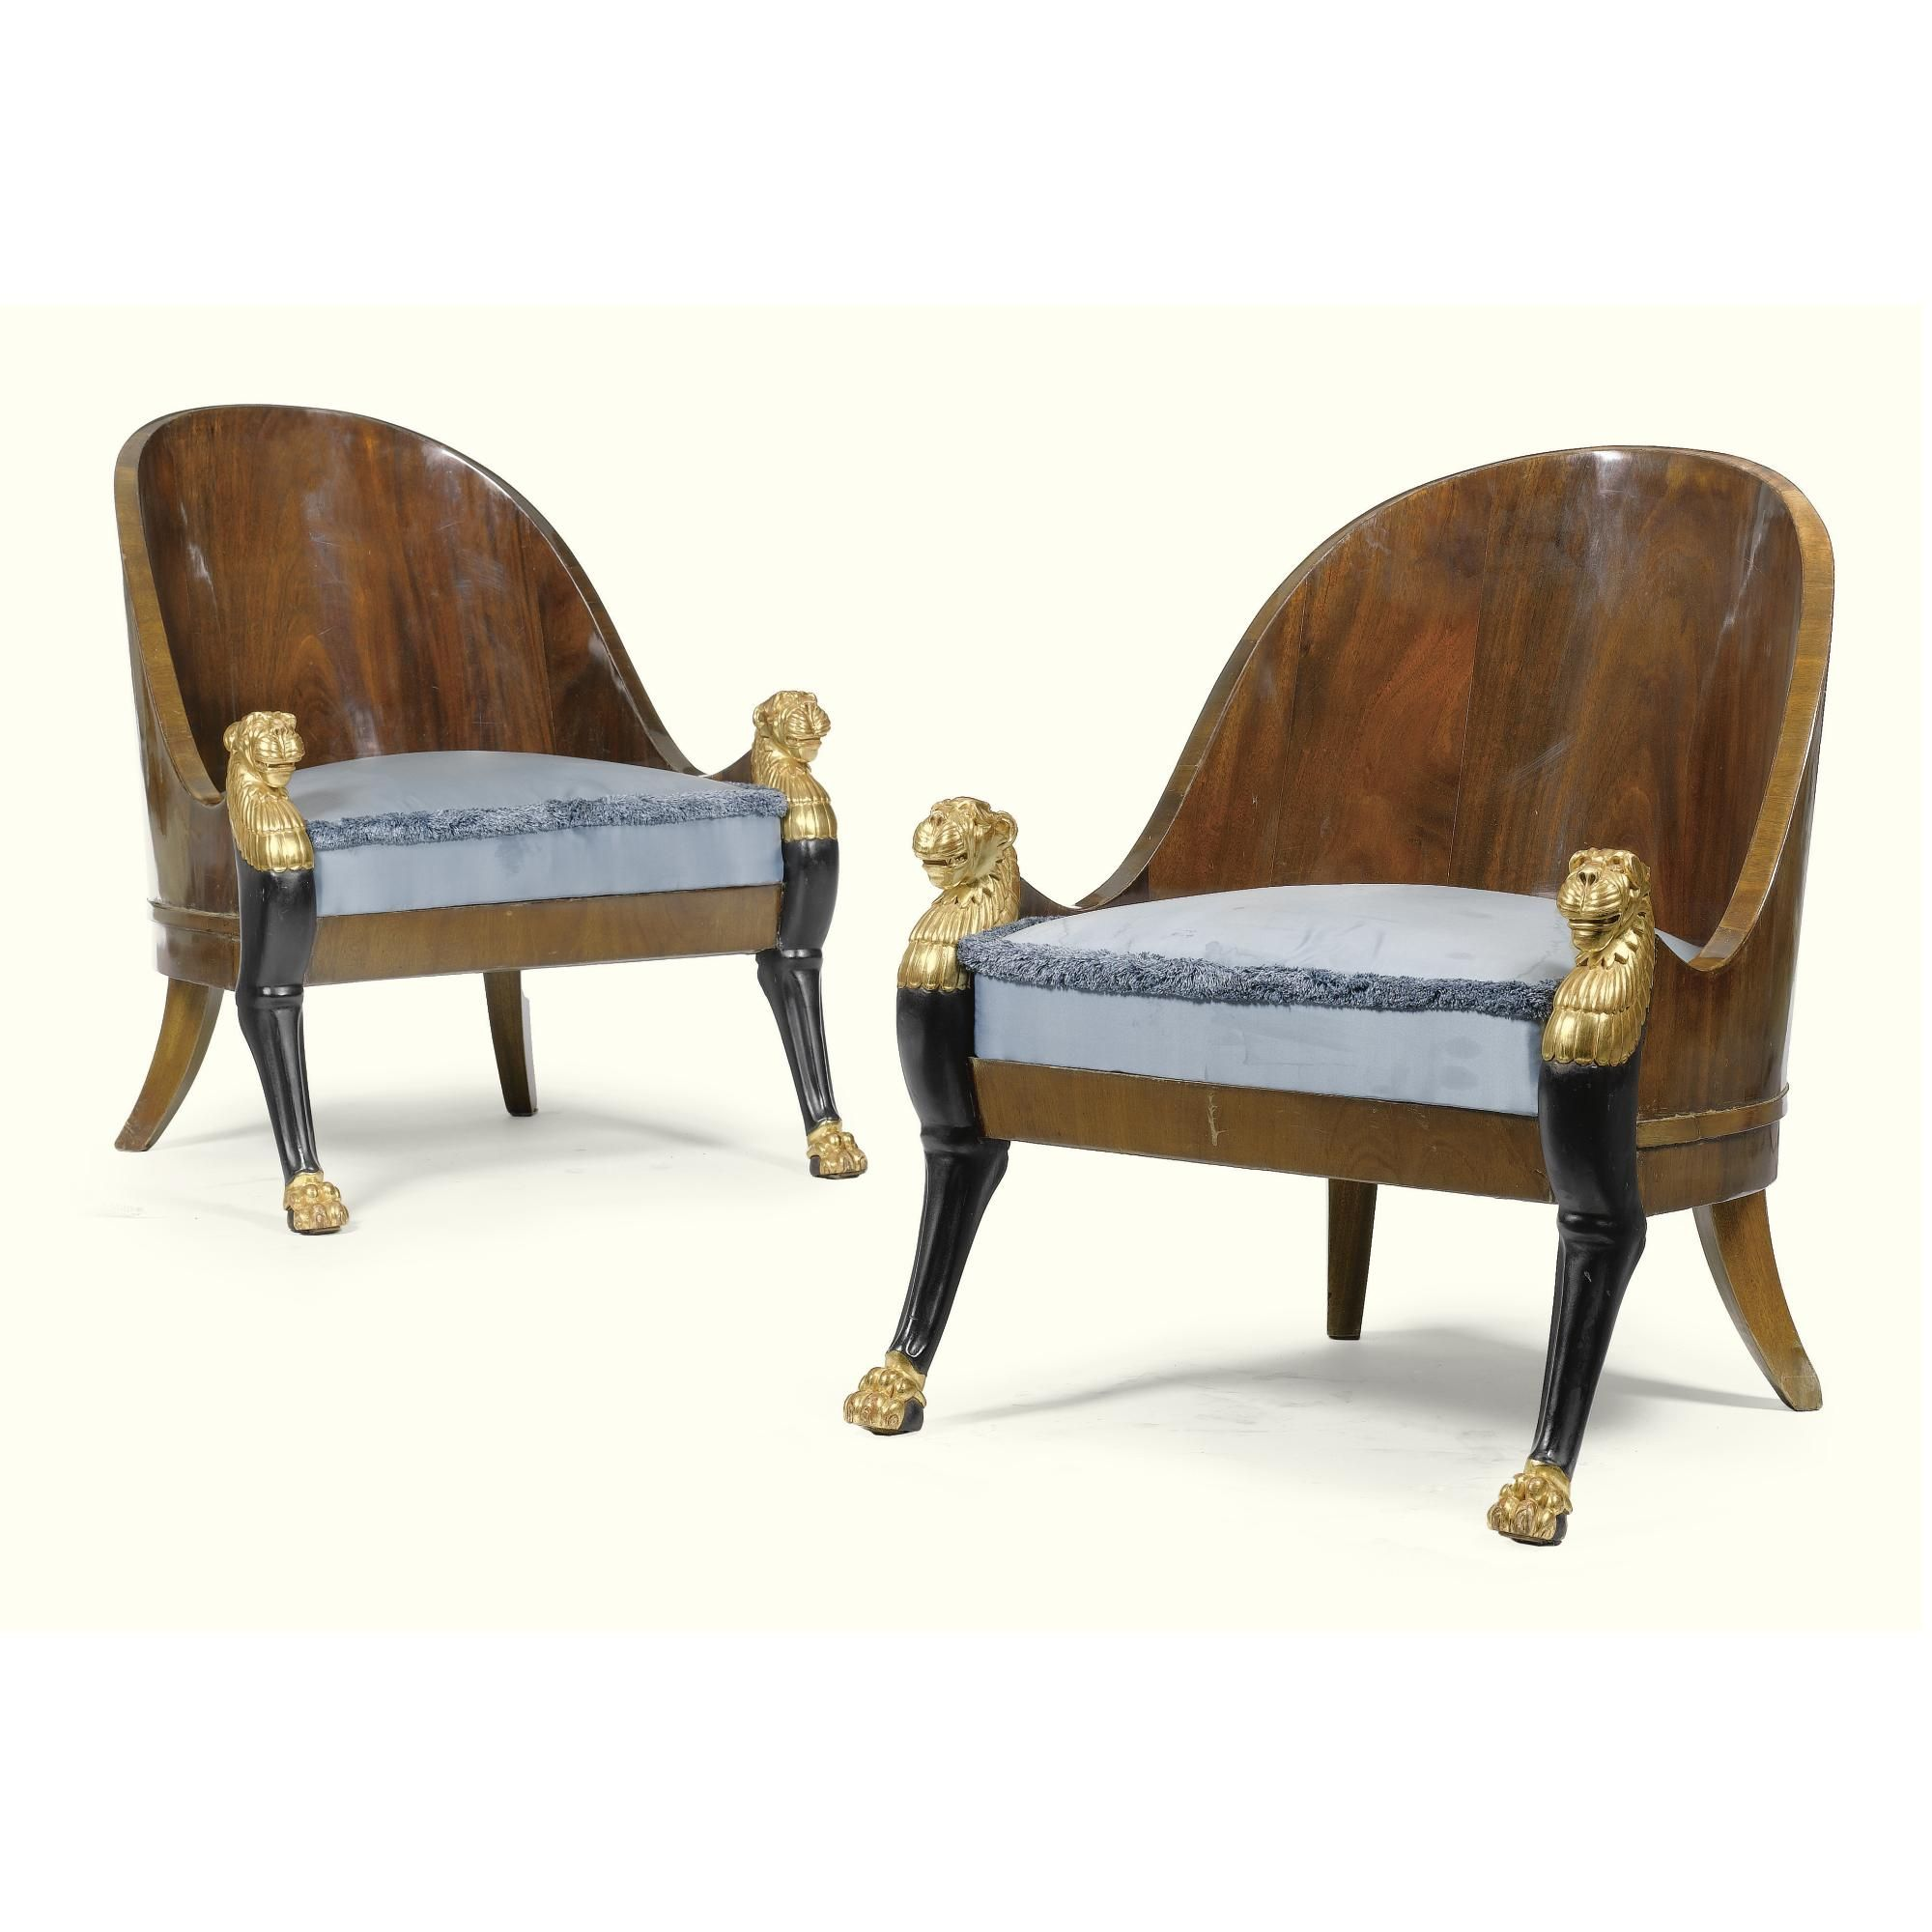 Furniture From The Collection Of Gianni Versace Villa